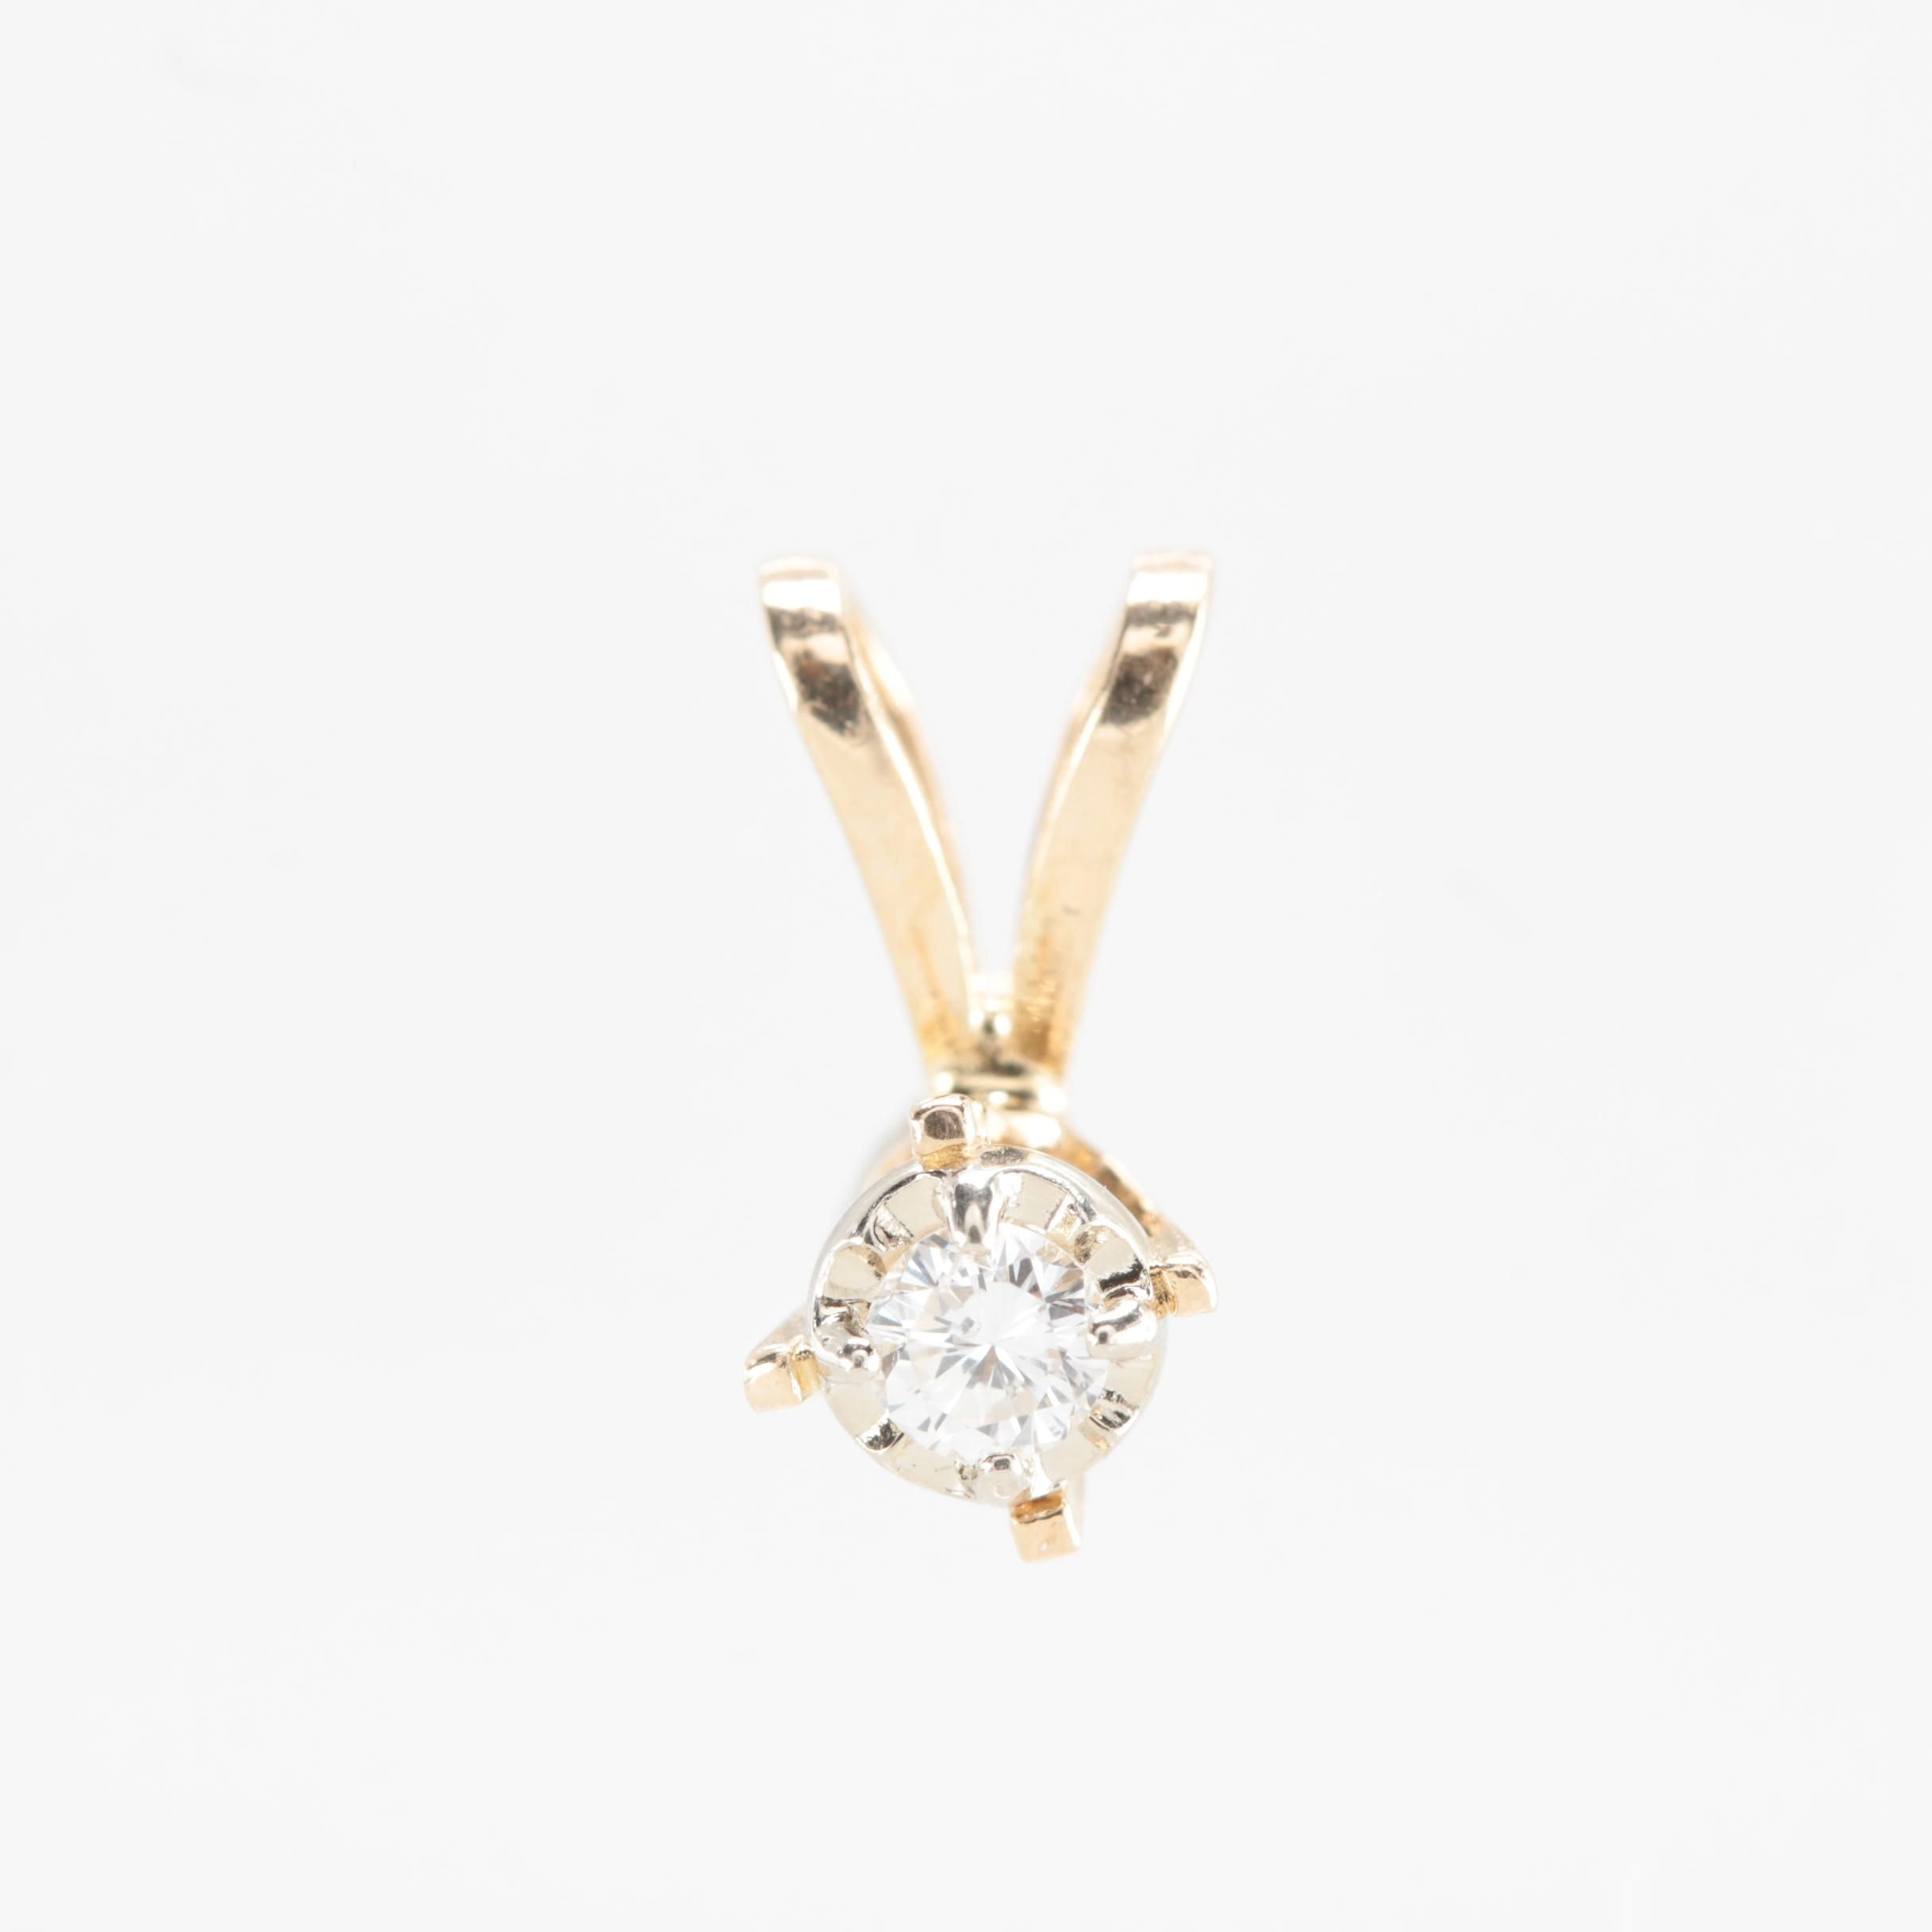 14K Yellow Gold Diamond Pendant with White Gold Accent